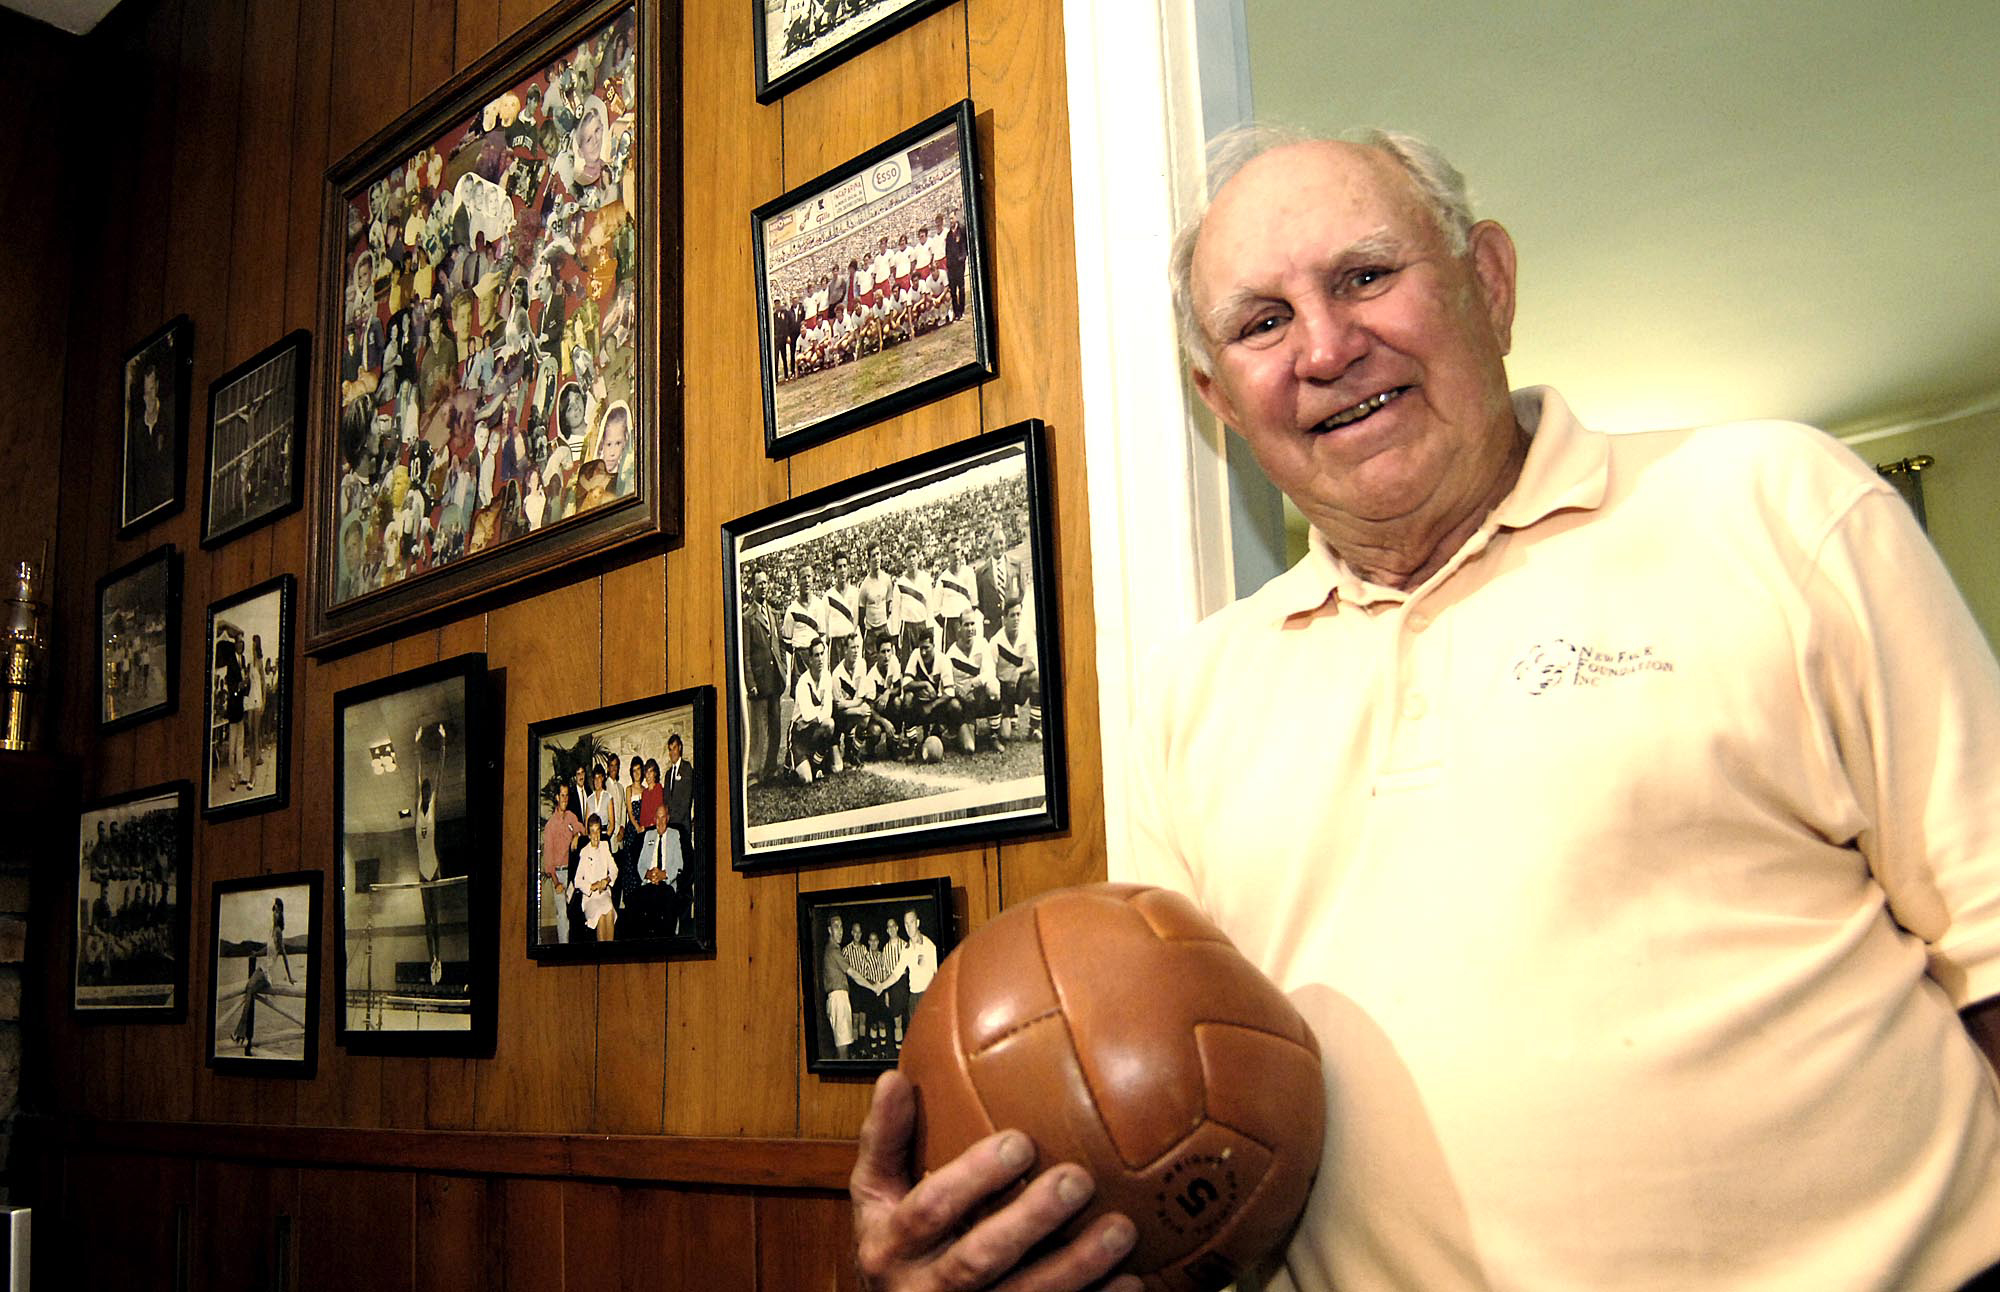 Walter Bahr at his Boalsburg home in 2006. Bahr kept lots of memorabilia from his days as a U.S. national team player.